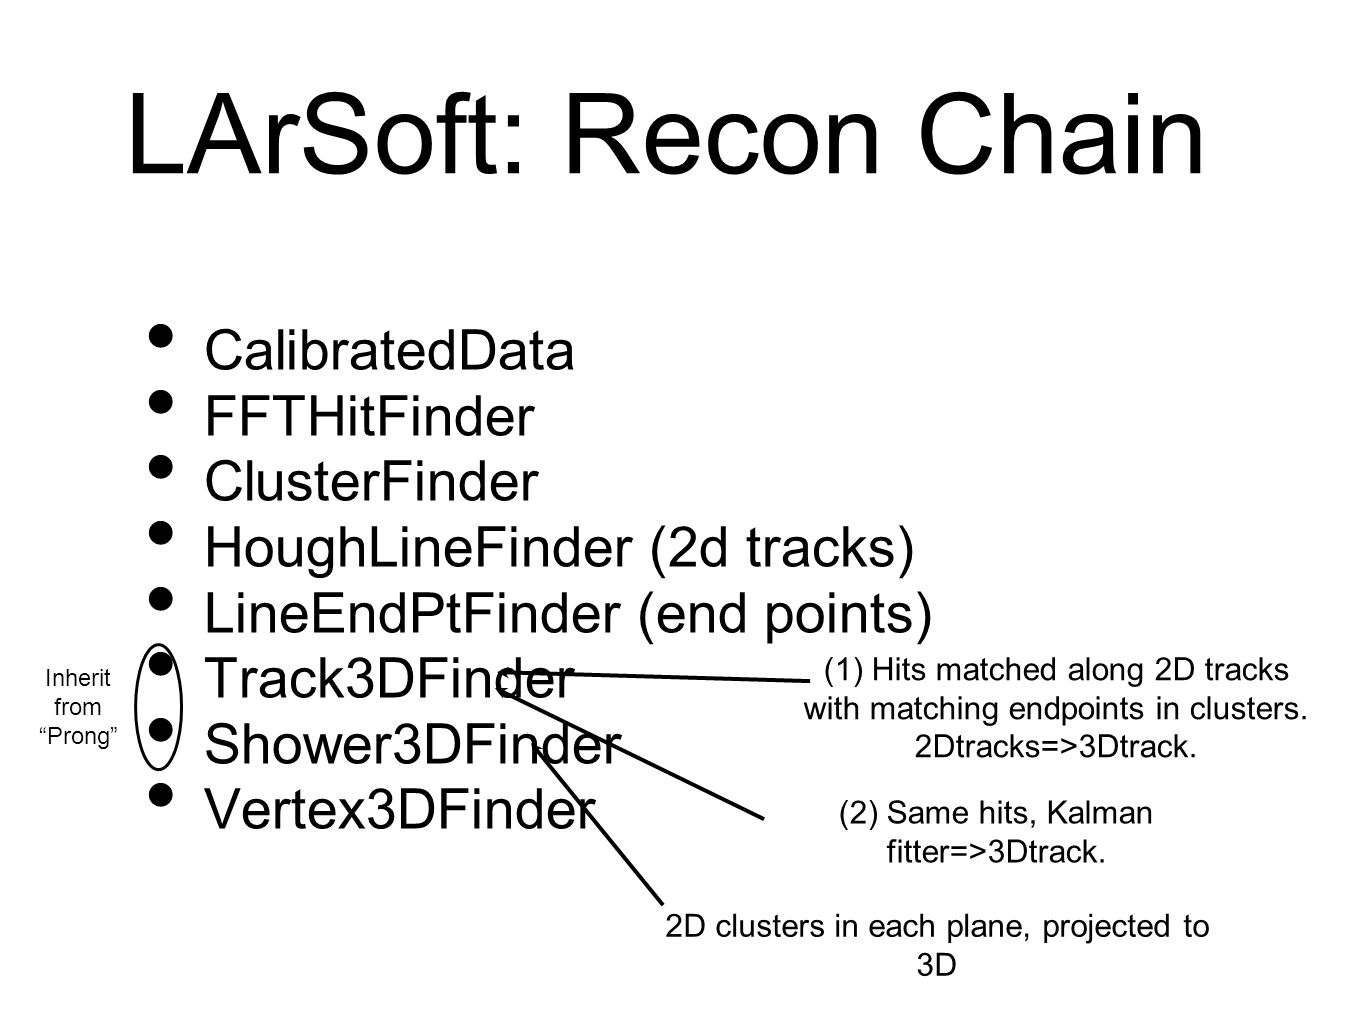 LArSoft: Recon Chain CalibratedData FFTHitFinder ClusterFinder HoughLineFinder (2d tracks) LineEndPtFinder (end points) Track3DFinder Shower3DFinder Vertex3DFinder (1) Hits matched along 2D tracks with matching endpoints in clusters.